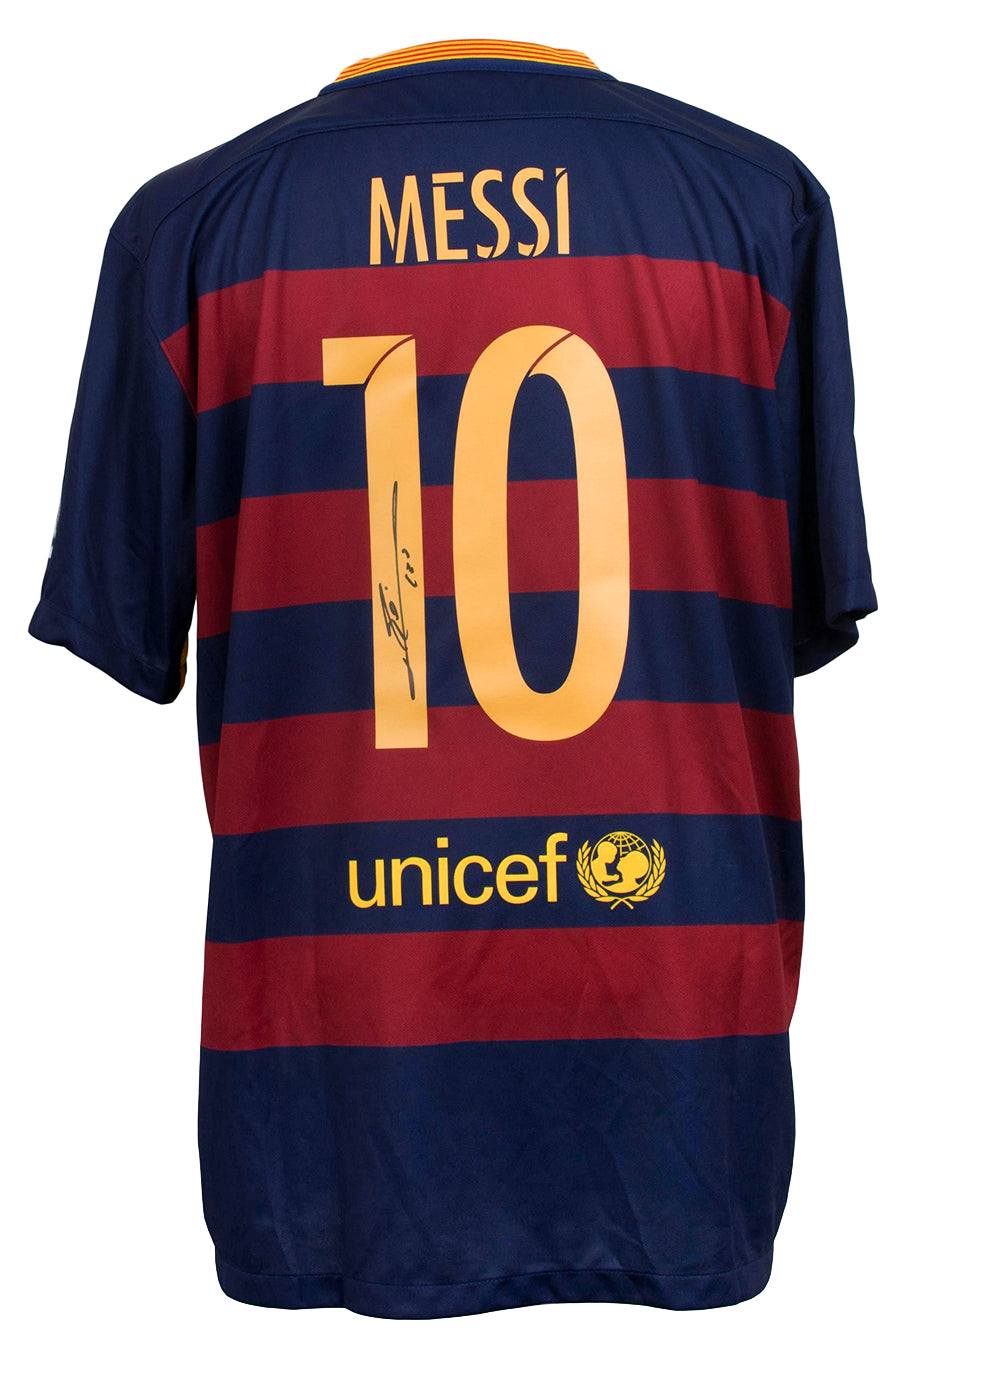 Lionel Messi Signed Nike 2015/2016 Barcelona Home Soccer Jersey 2XL Messi COA PSM-Powers Sports Memorabilia